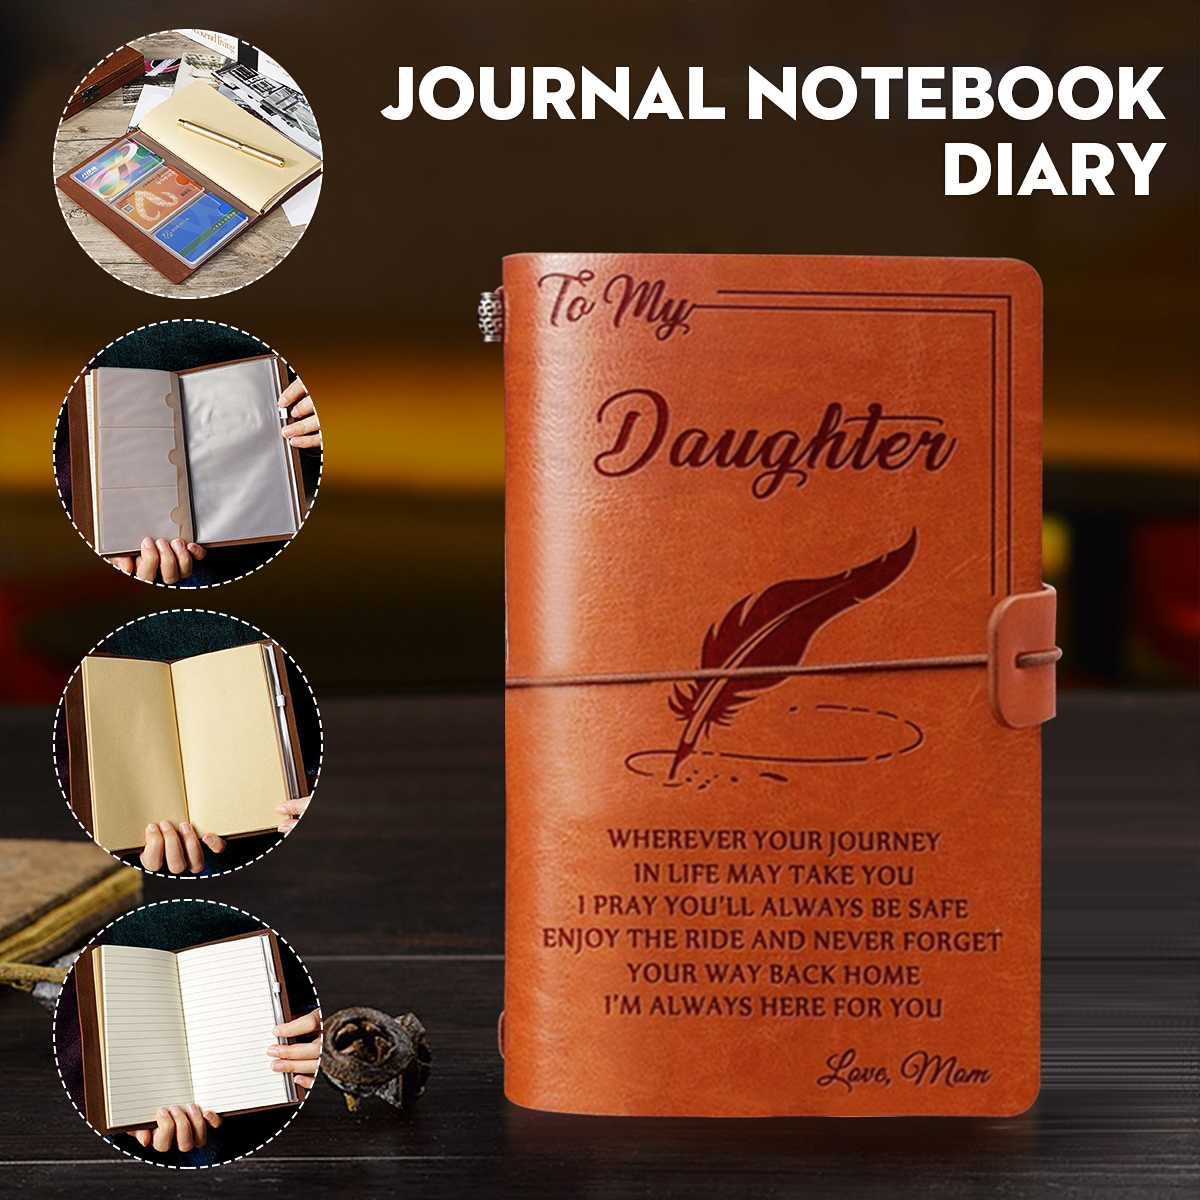 20x12cm Engraved Leather Journal Notebook Diary To My Daughter Face Challenges Love Mon Engraved Notebook Diary